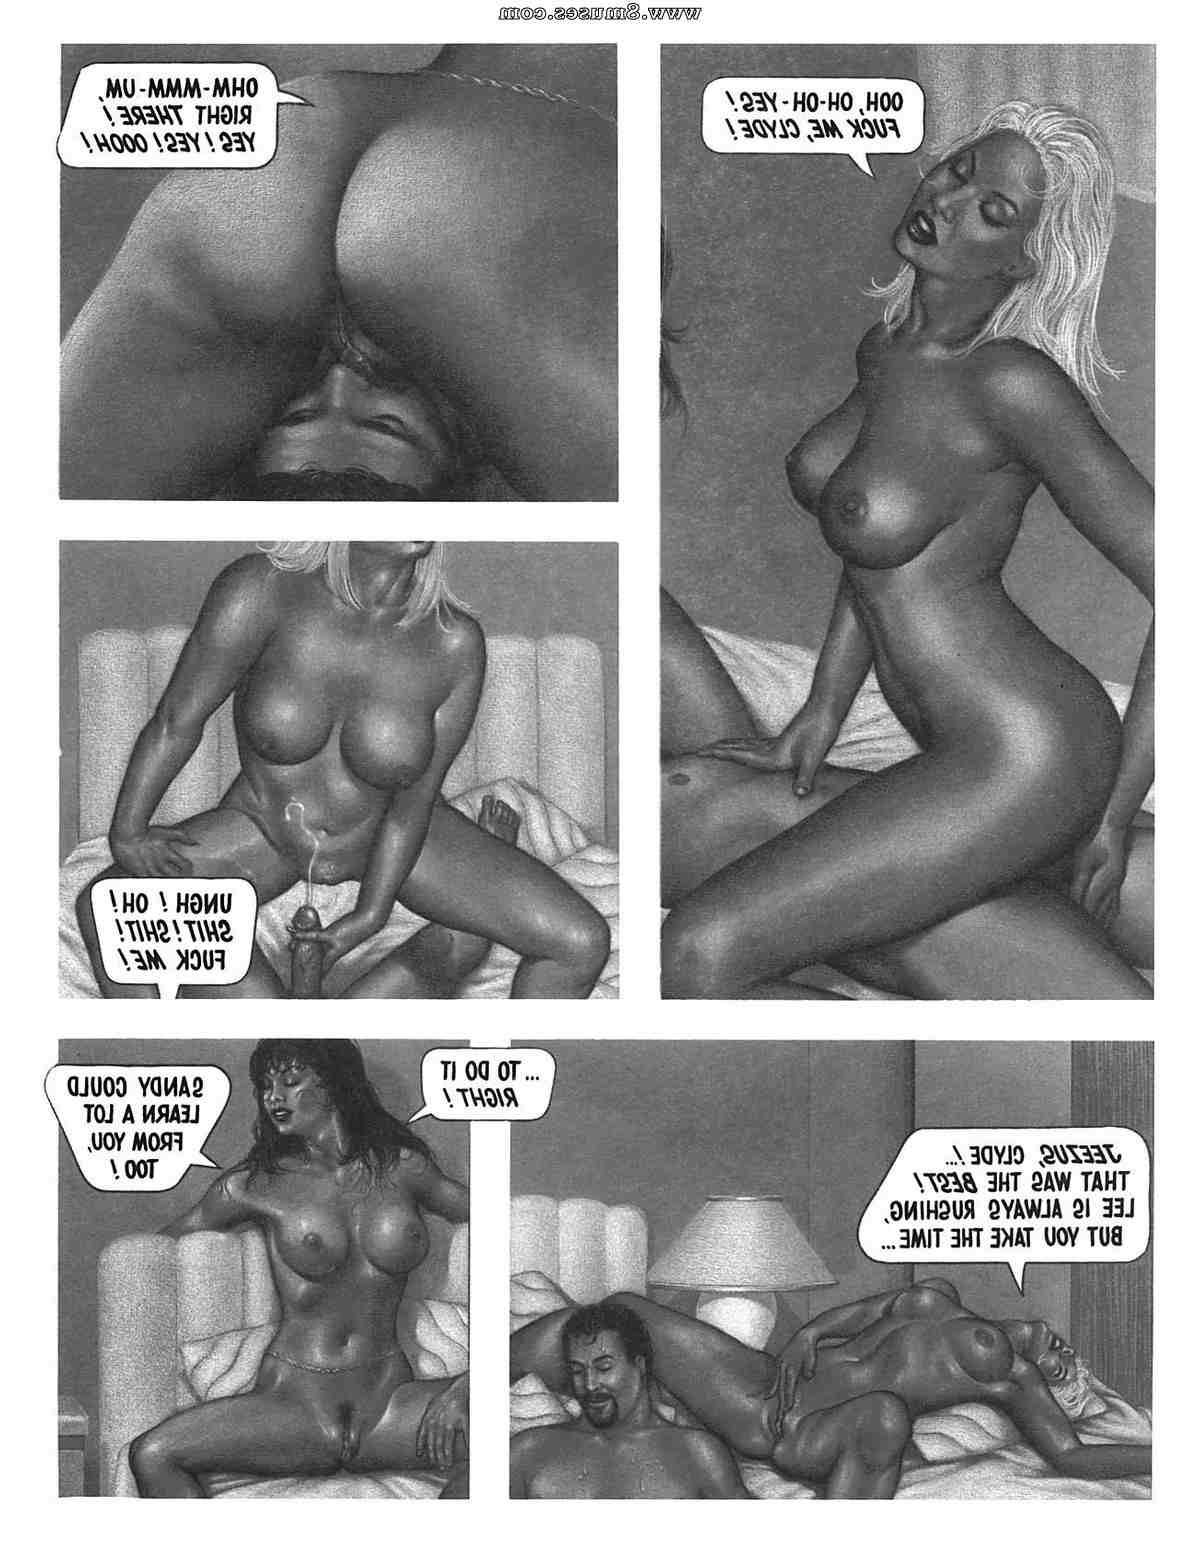 Amerotica-Comics/Blind-Squirrel Blind_Squirrel__8muses_-_Sex_and_Porn_Comics_14.jpg